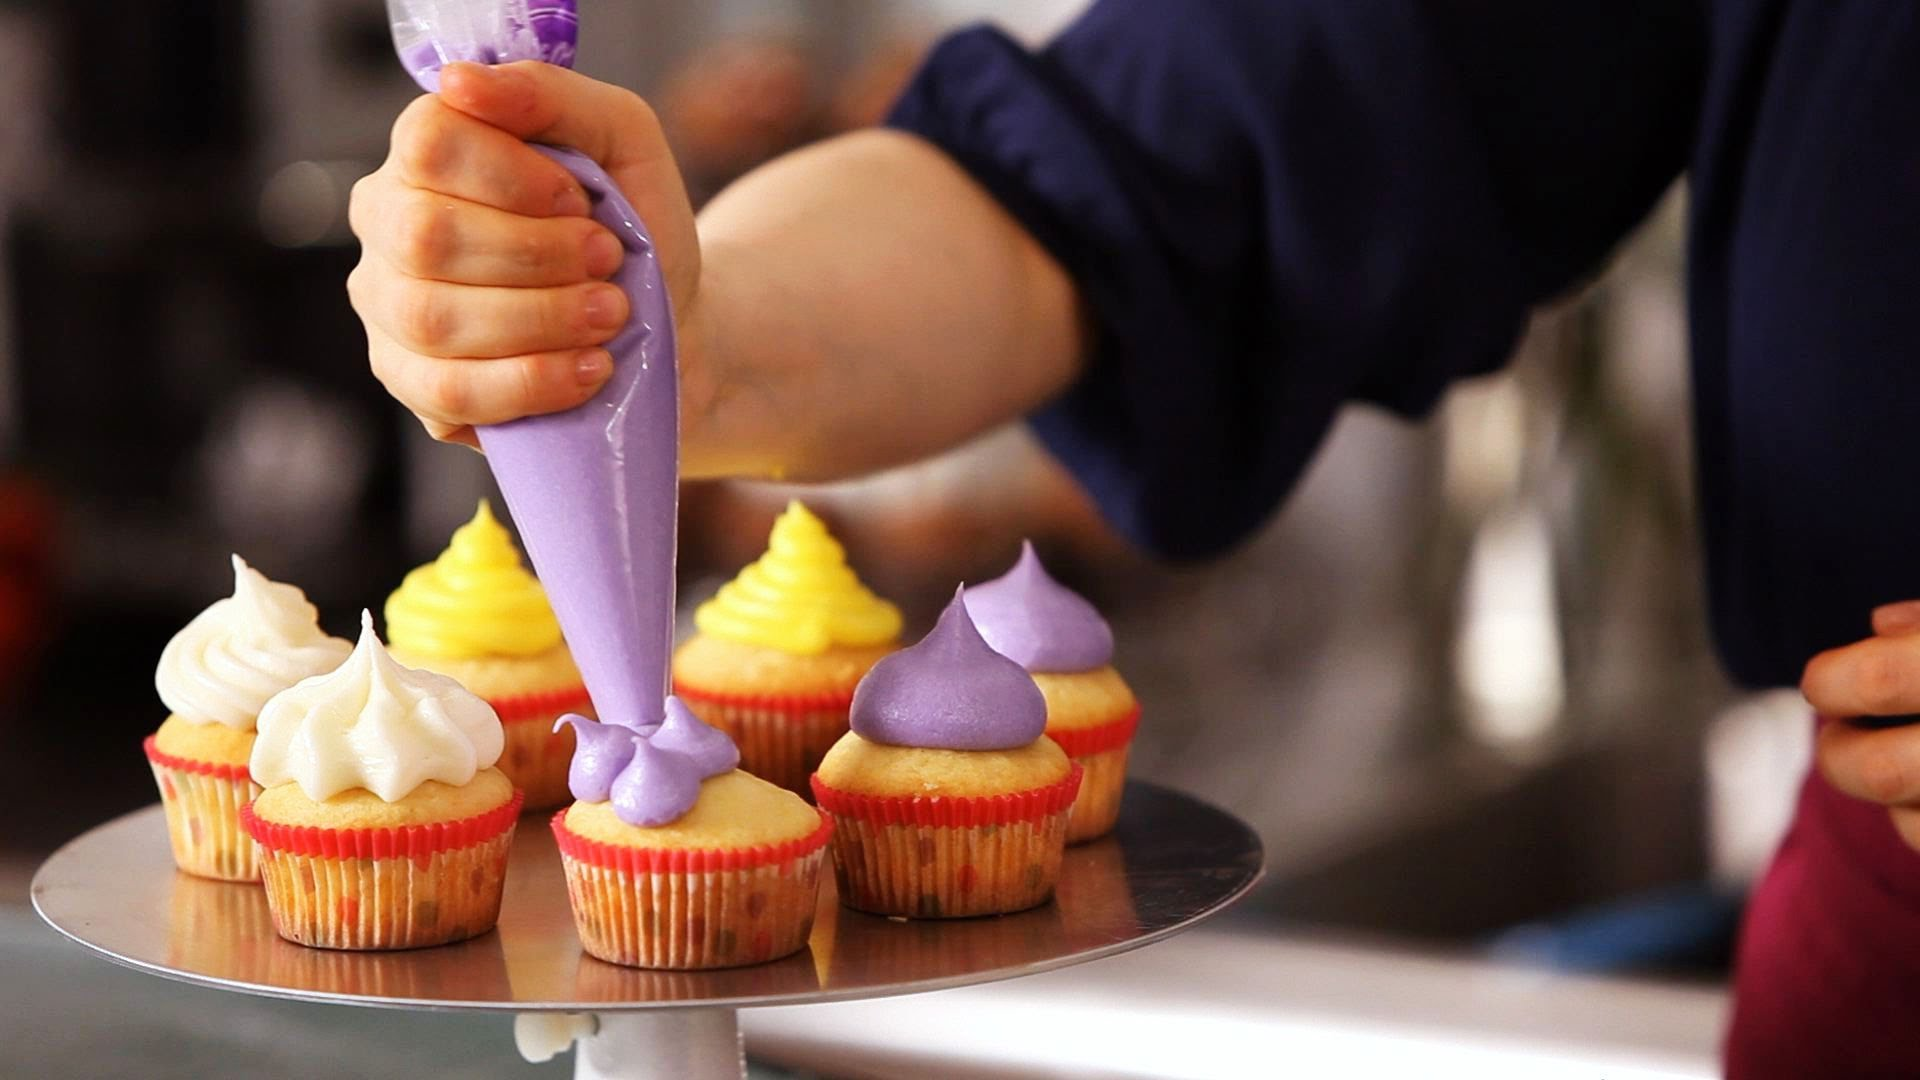 Tickets for cup cake decorating class in adelaide from unilodge cup cake decorating class junglespirit Choice Image